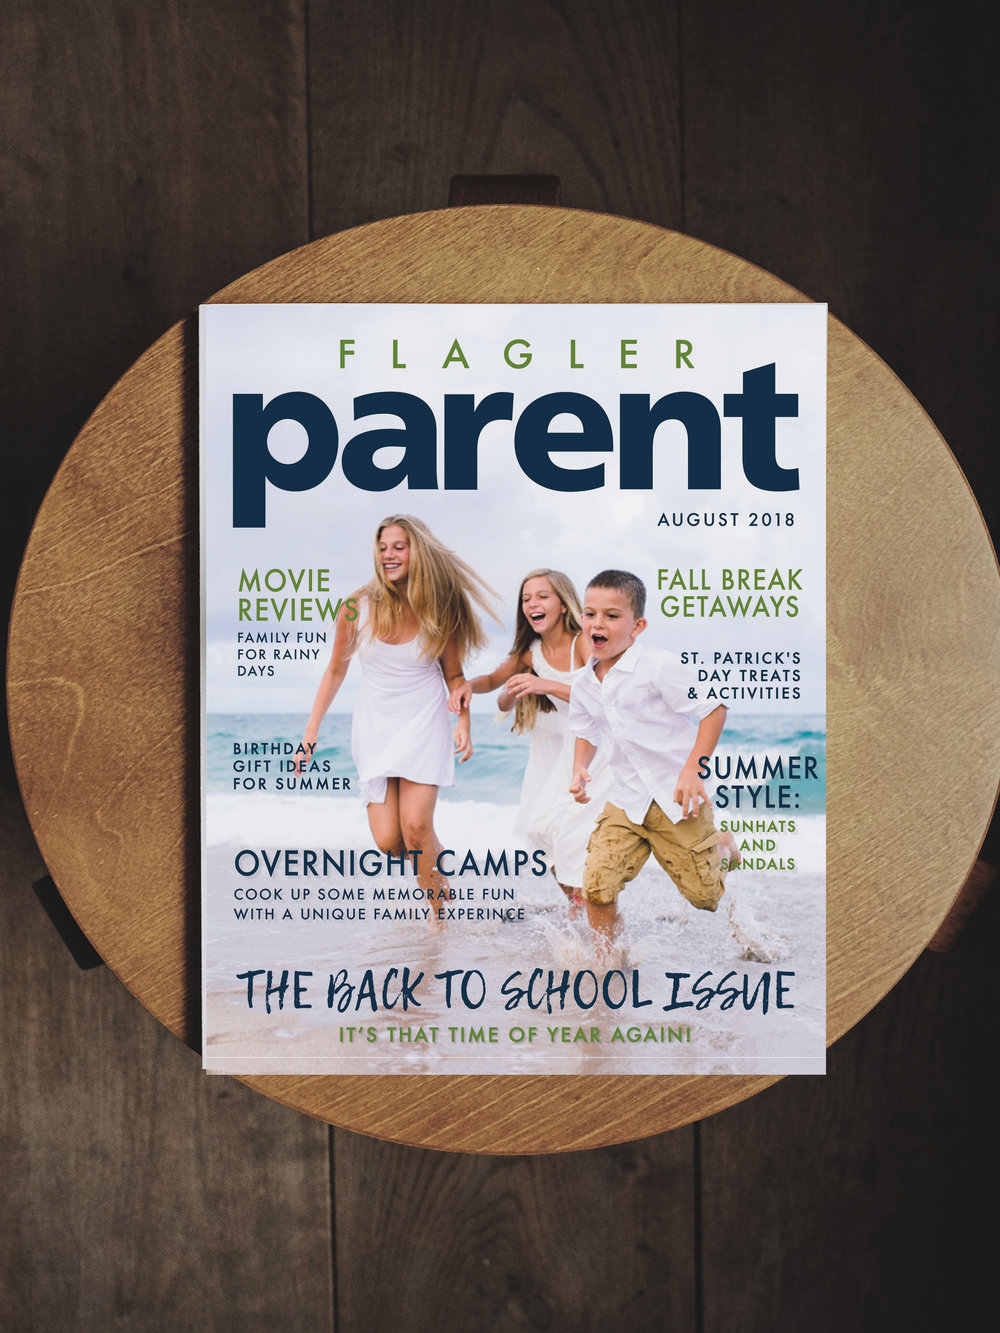 CE Studios: Branding, brand refresh, cover product design for parents' magazine